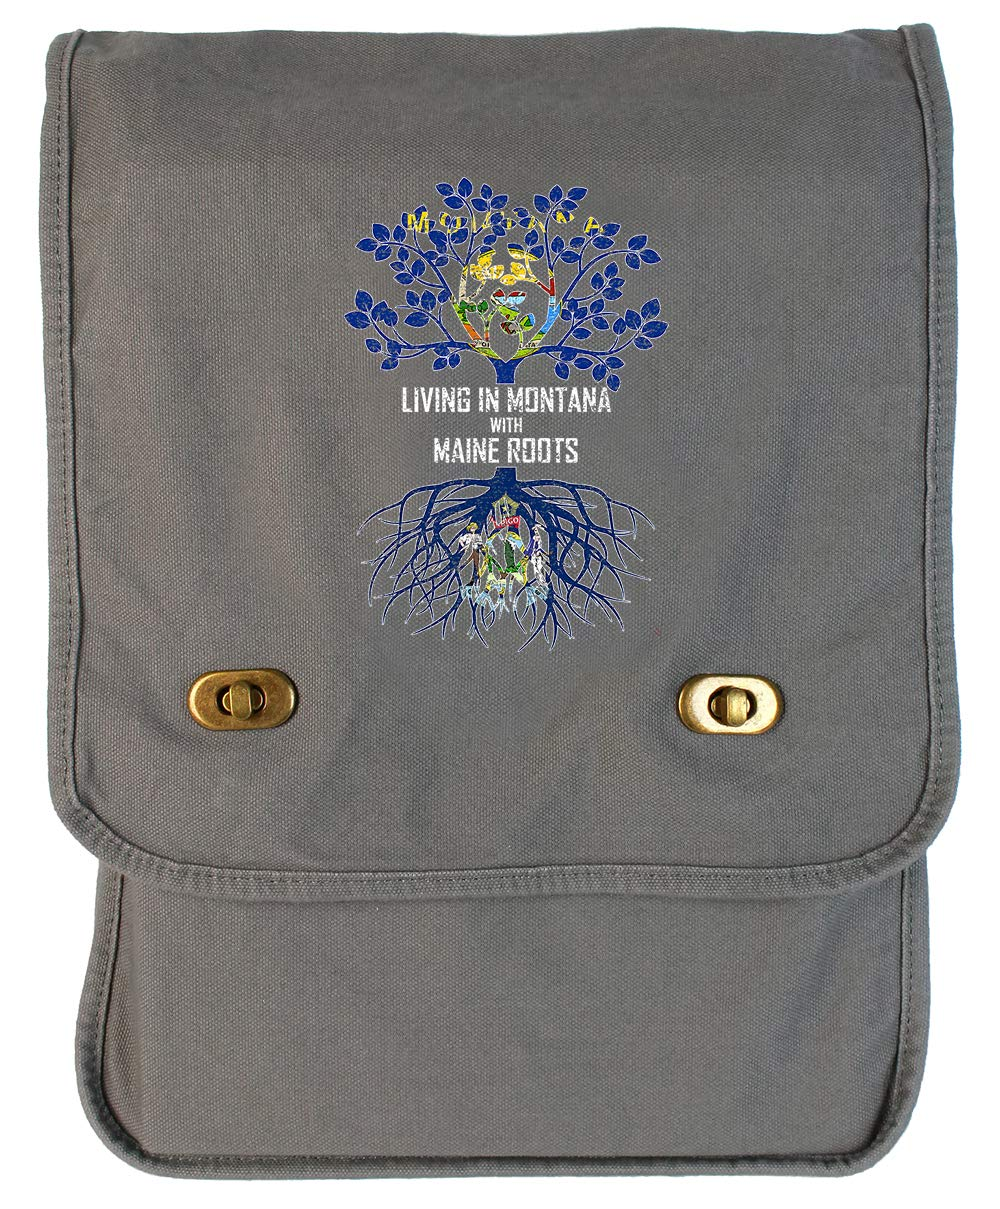 Tenacitee Living In Montana with Maine Roots Grey Brushed Canvas Messenger Bag